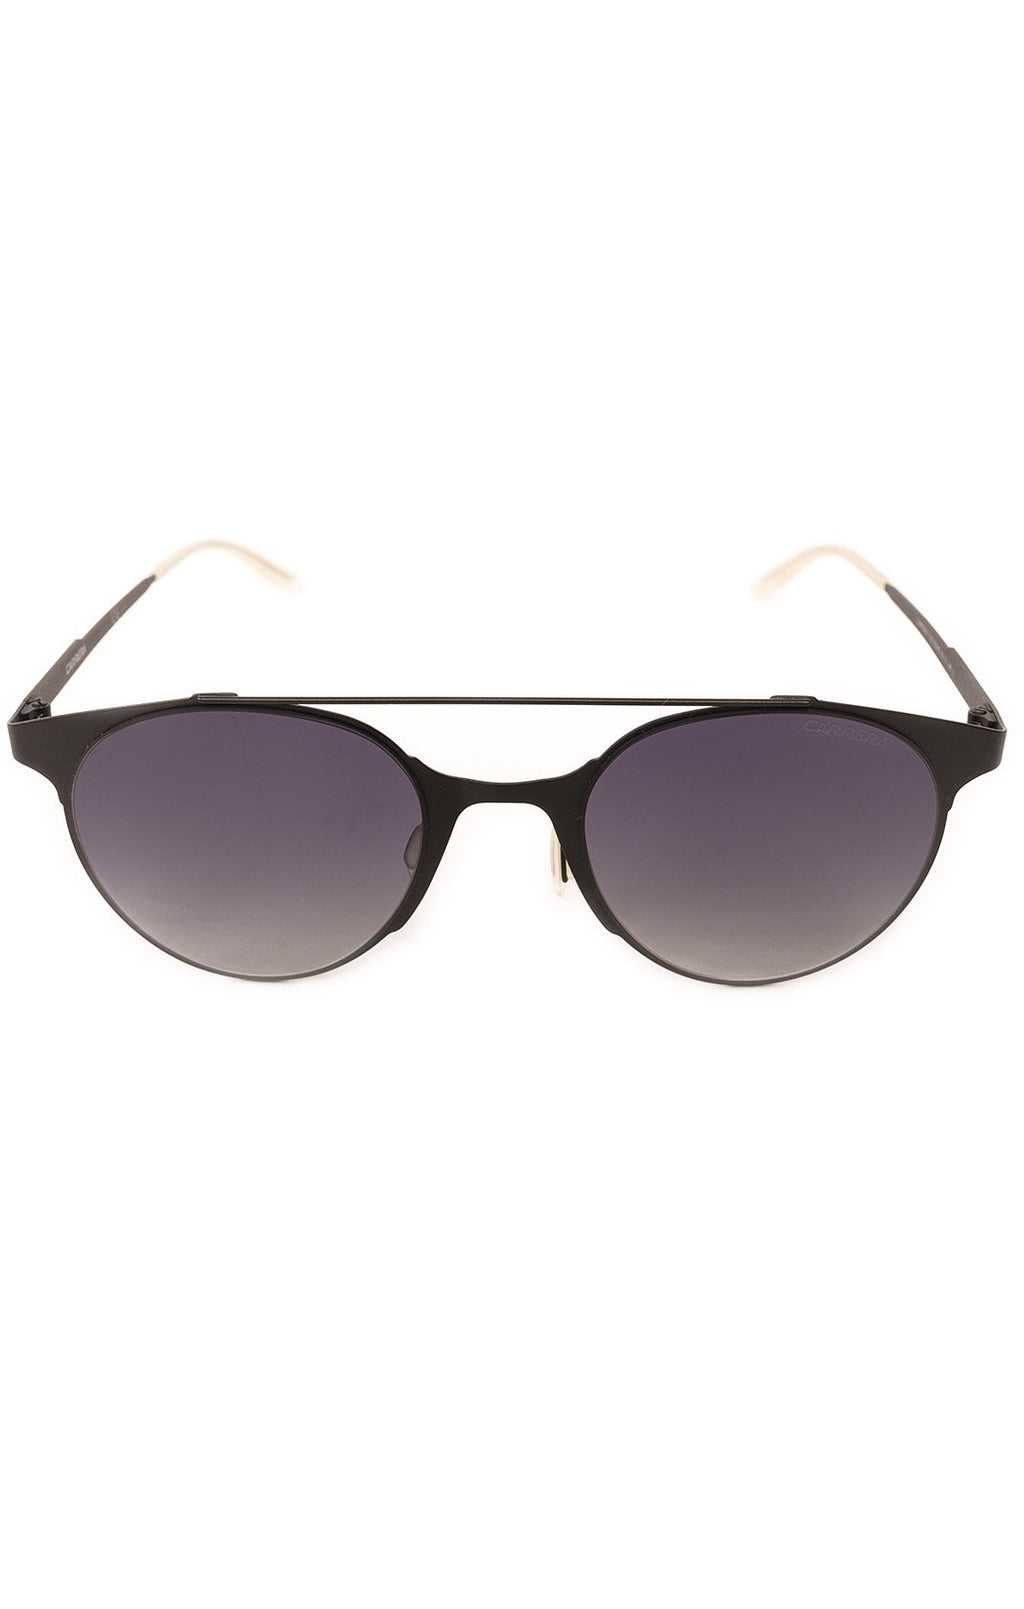 "Front view of PORSCHE  Sunglasses  Size: 5.5"" W x 2"" H"